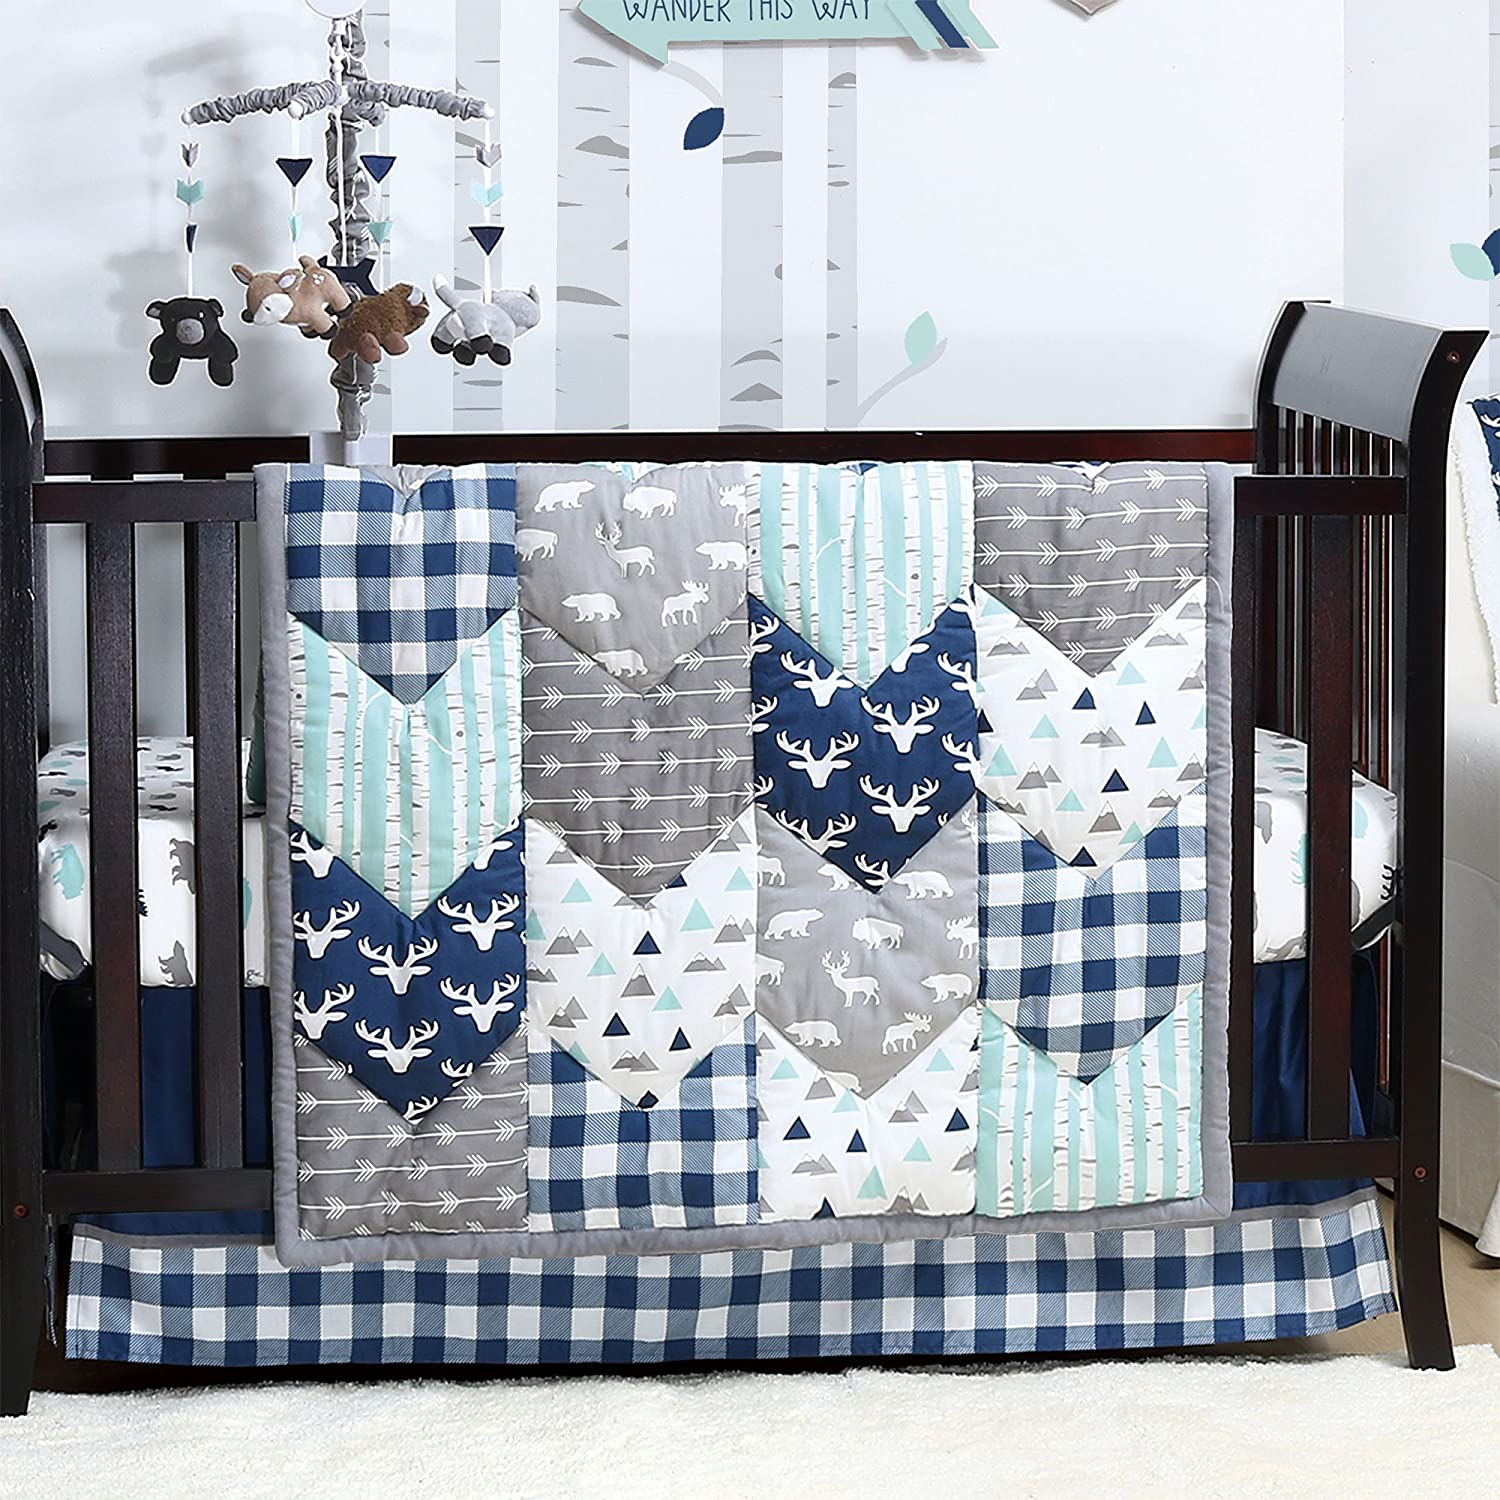 Woodland Trail 5 Piece Forest Animal Theme Patchwork Baby Boy Crib Bedding Set Farallon Brands FAR1082BED5